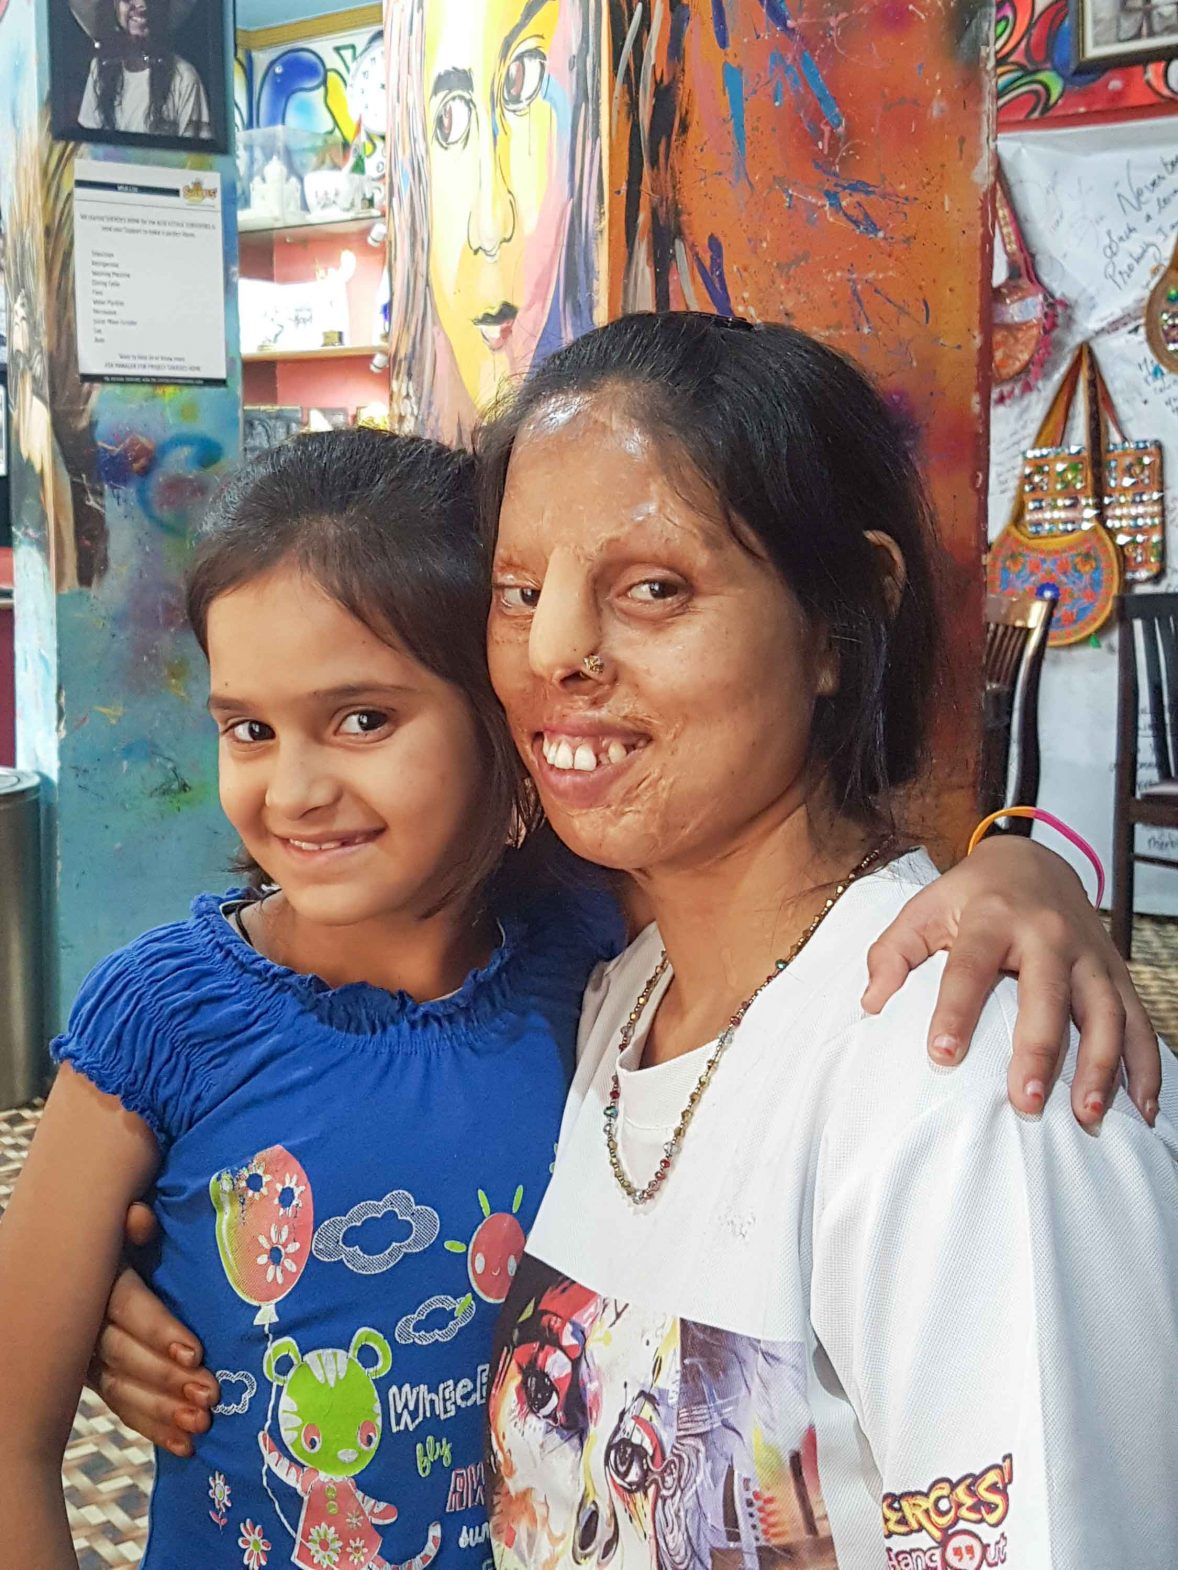 Shabnam and her daughter at Sheroes Hangout in Agra, India.